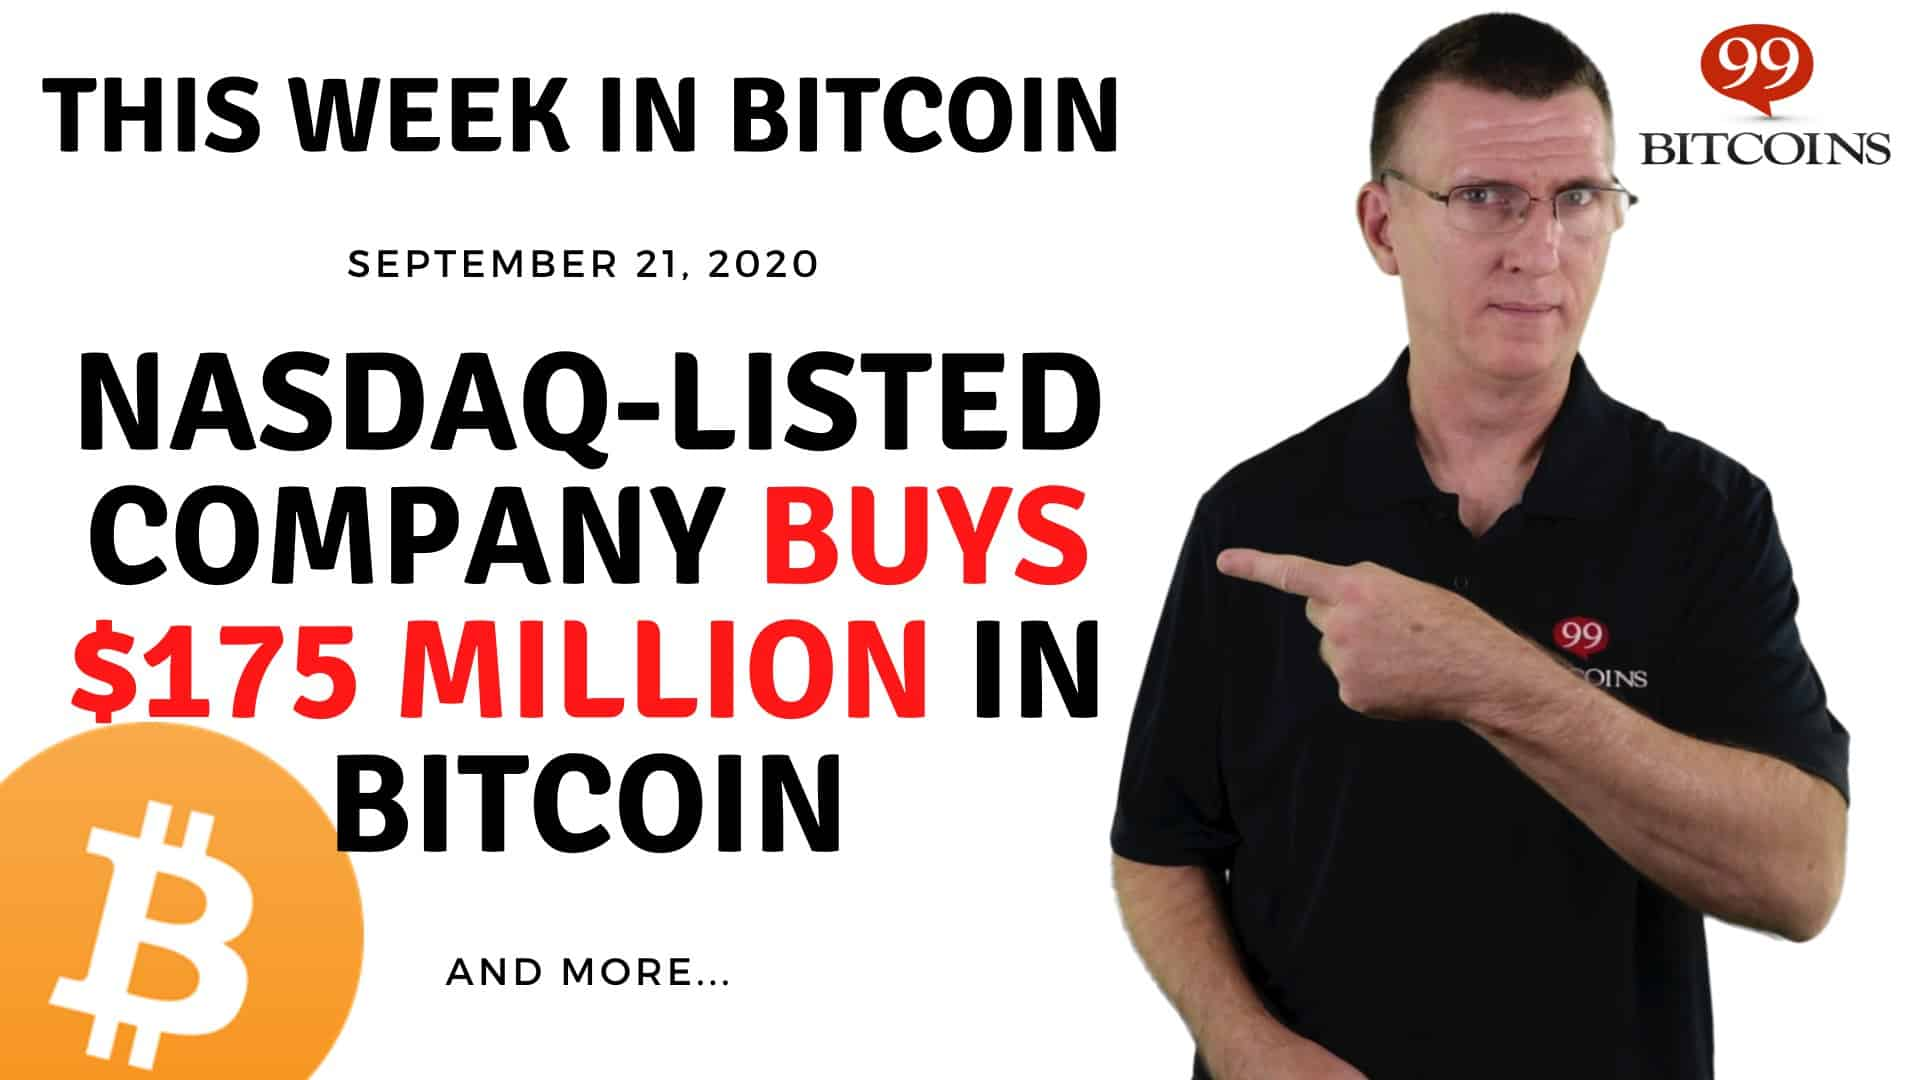 NASDAQ-Listed Company Buys $175M in Bitcoin | Bitcoin News Summary Sep 21, 2020